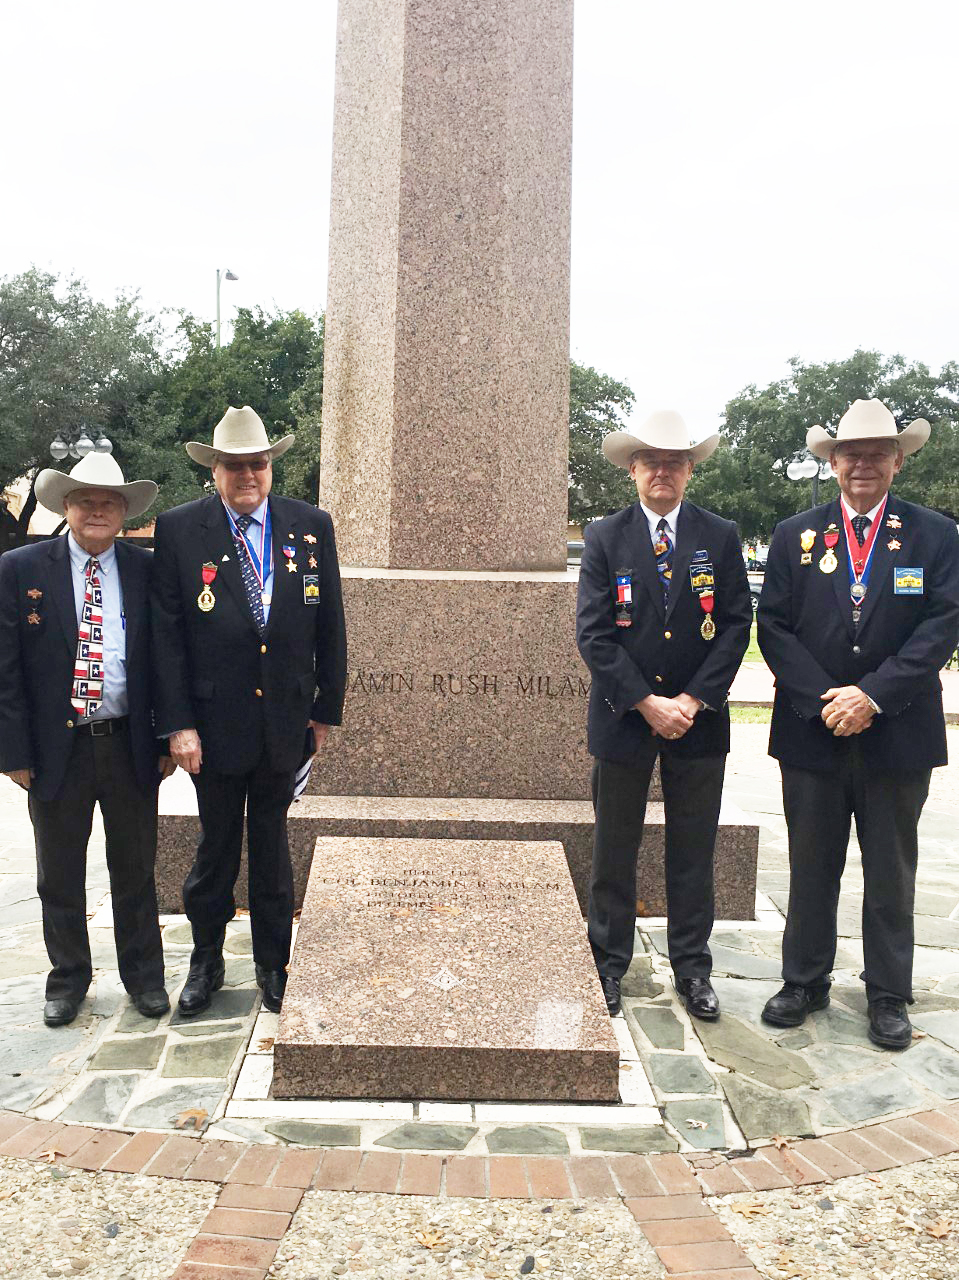 "Historian  Robert Bohmfalk,  Past President  Jim Massingill,  1st VP  John Meehan,  Marketing Officer  Richard Weitzel,   &  2nd Vice President General    Ken Pfeiffer   ( not pictured ) represent the Alamo Chapter & pay tribute on Dec 8, 2018 to the life and passing of Ben Milam, hero of the Texas Revolution. Without Ben and his famous December 1835 "" Who will go with Old Ben Milam into San Antonio "", there might not have been a Texas Republic. His leadership led to the tough fight and ultimate surrender of the Mexican garrison under General Cos at the cost of Ben's life. This was the Chapter's 10th Memorial to this hero of the Texas Revolution."